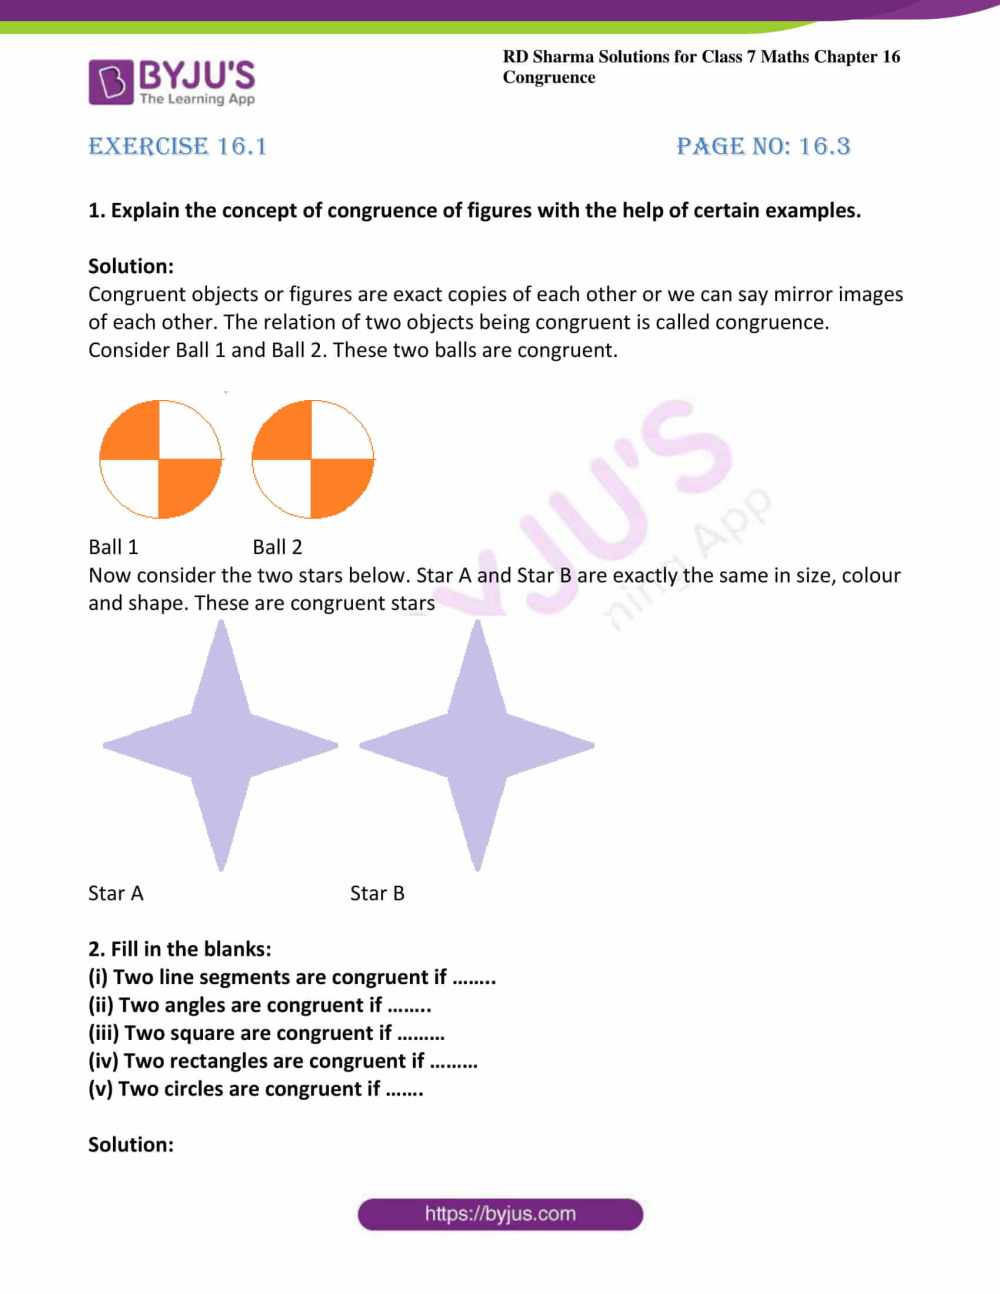 medium resolution of RD Sharma Solutions for Class 7 Maths Chapter 16 - Congruence - Free PDFs  are available here